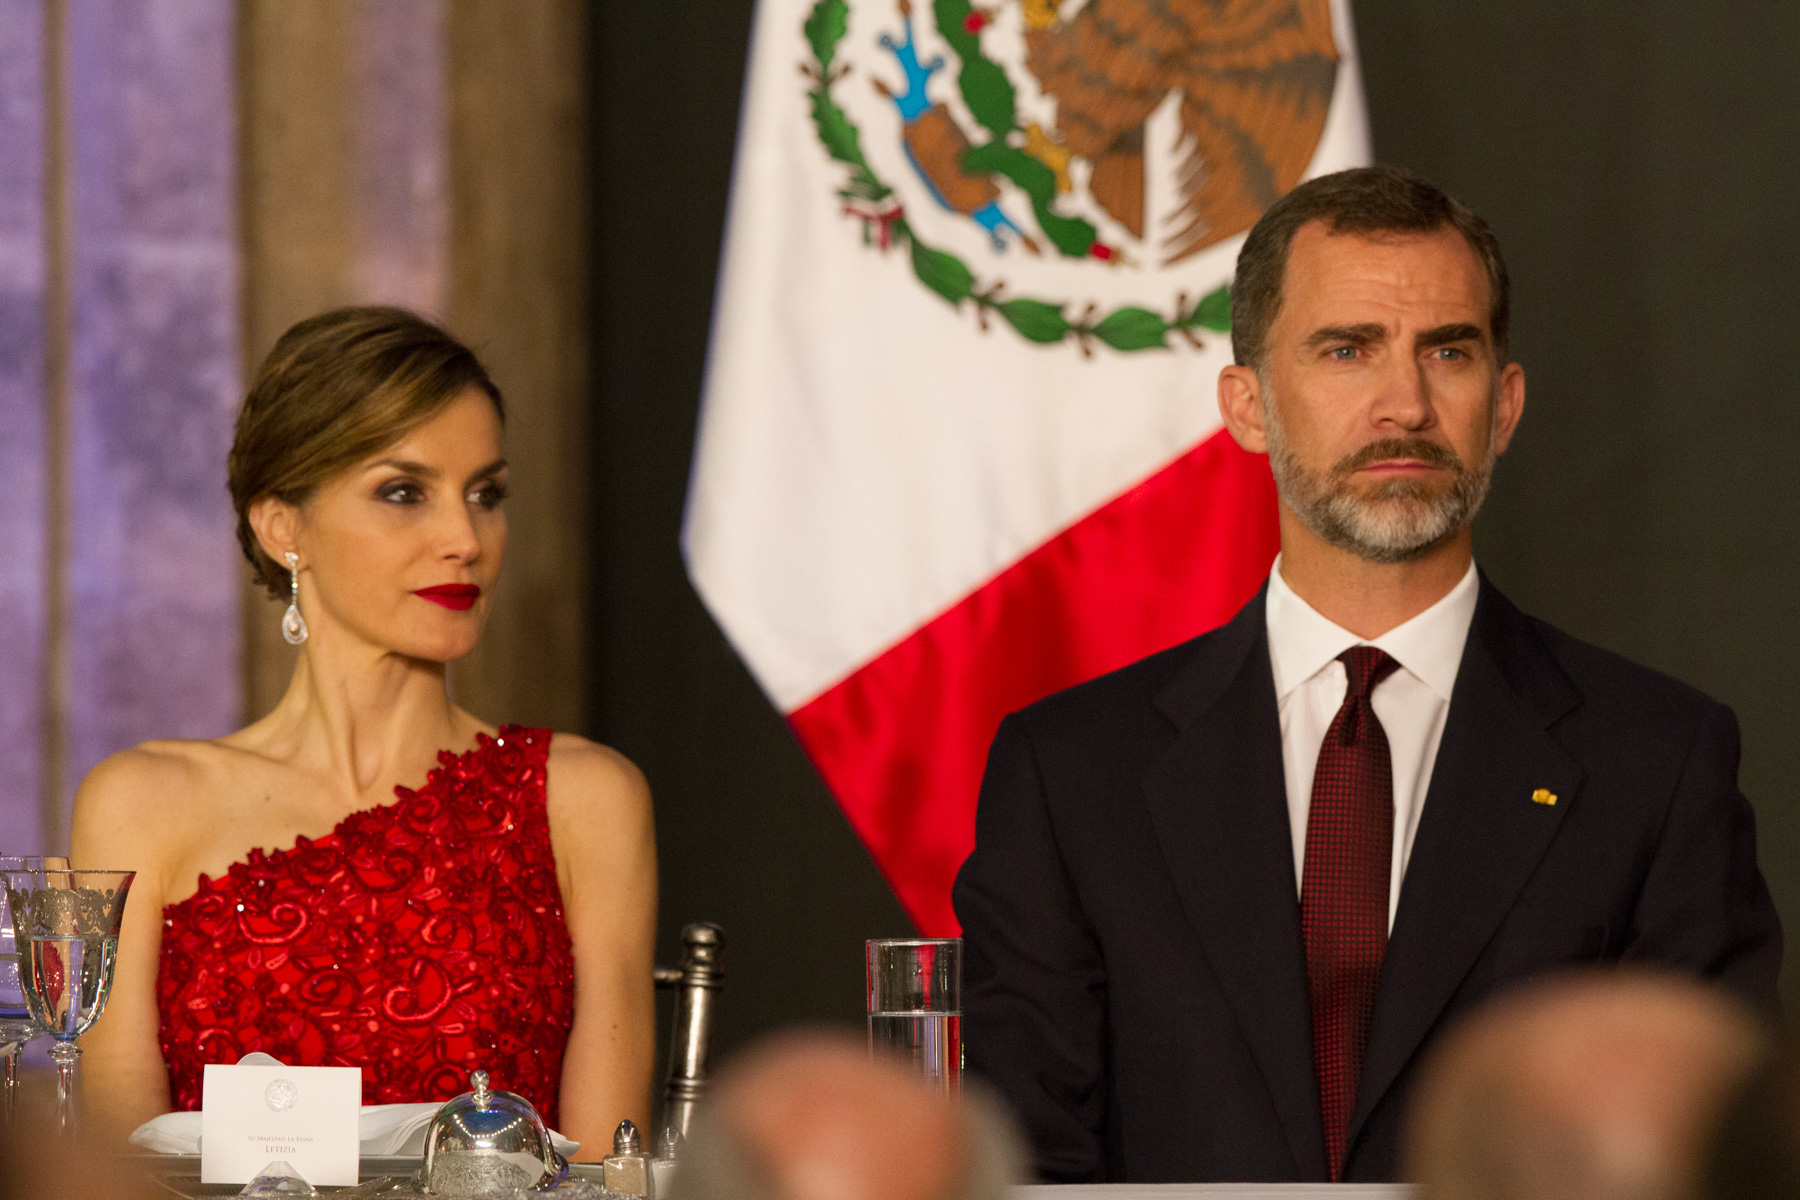 Fuente Kings And Queens: Archivo:The King And The Queen Of Spain (2015).jpg